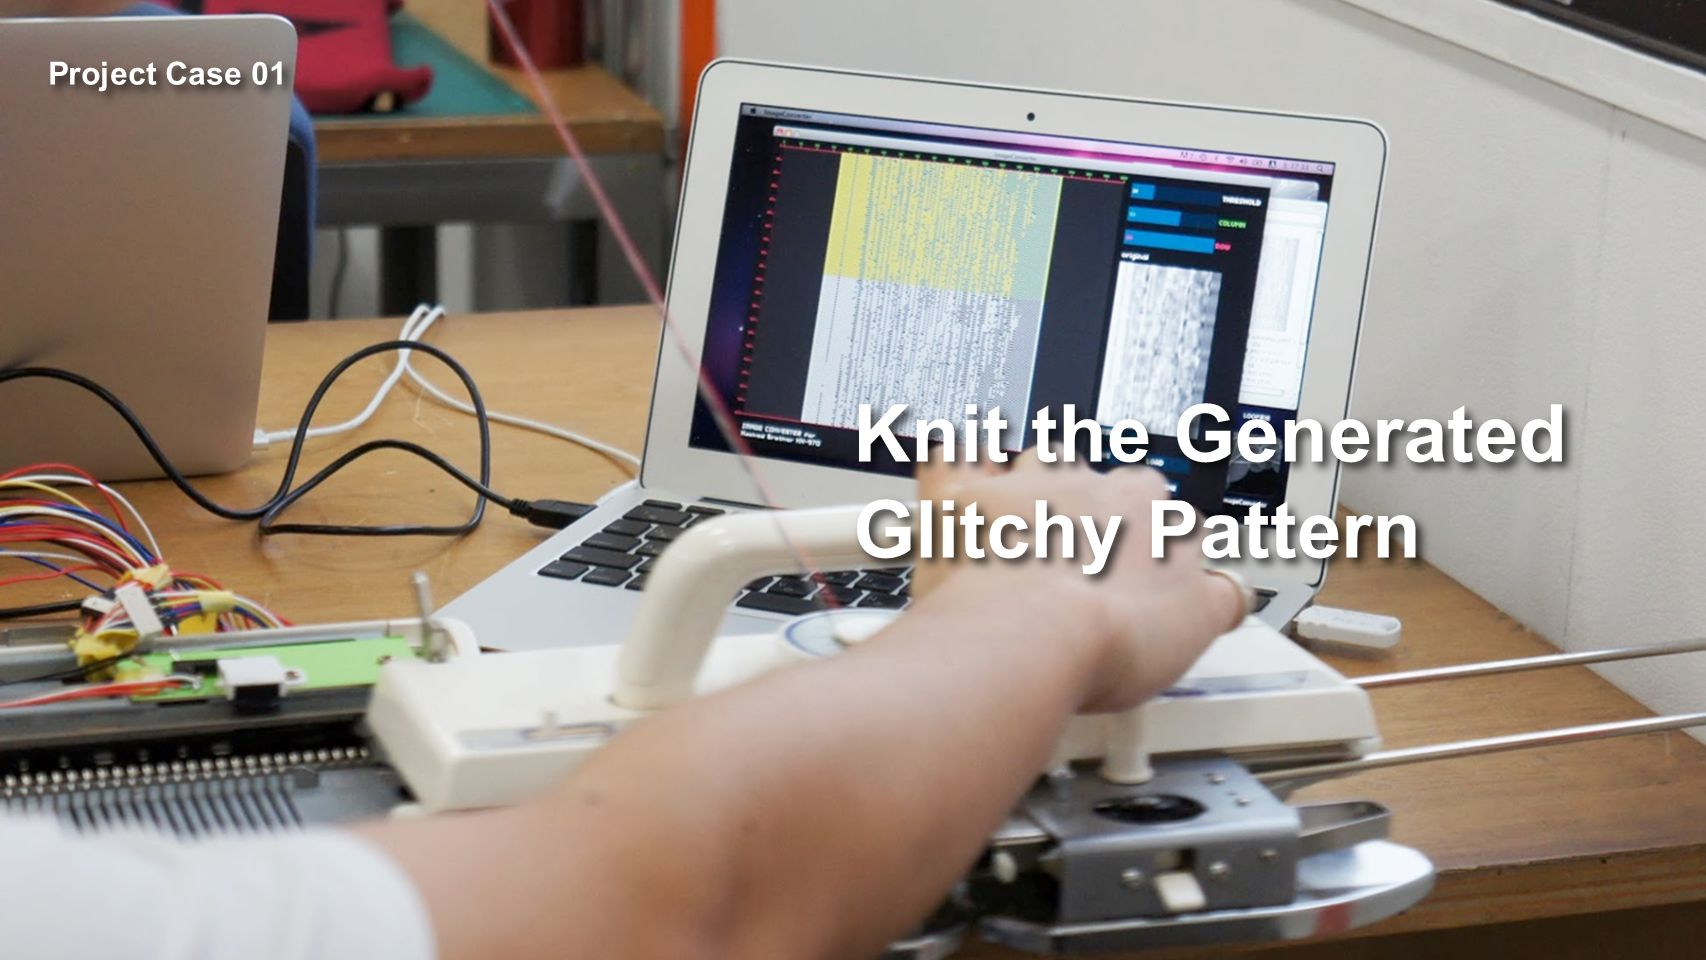 Knit the Generated Glitchy Pattern Project Case 01